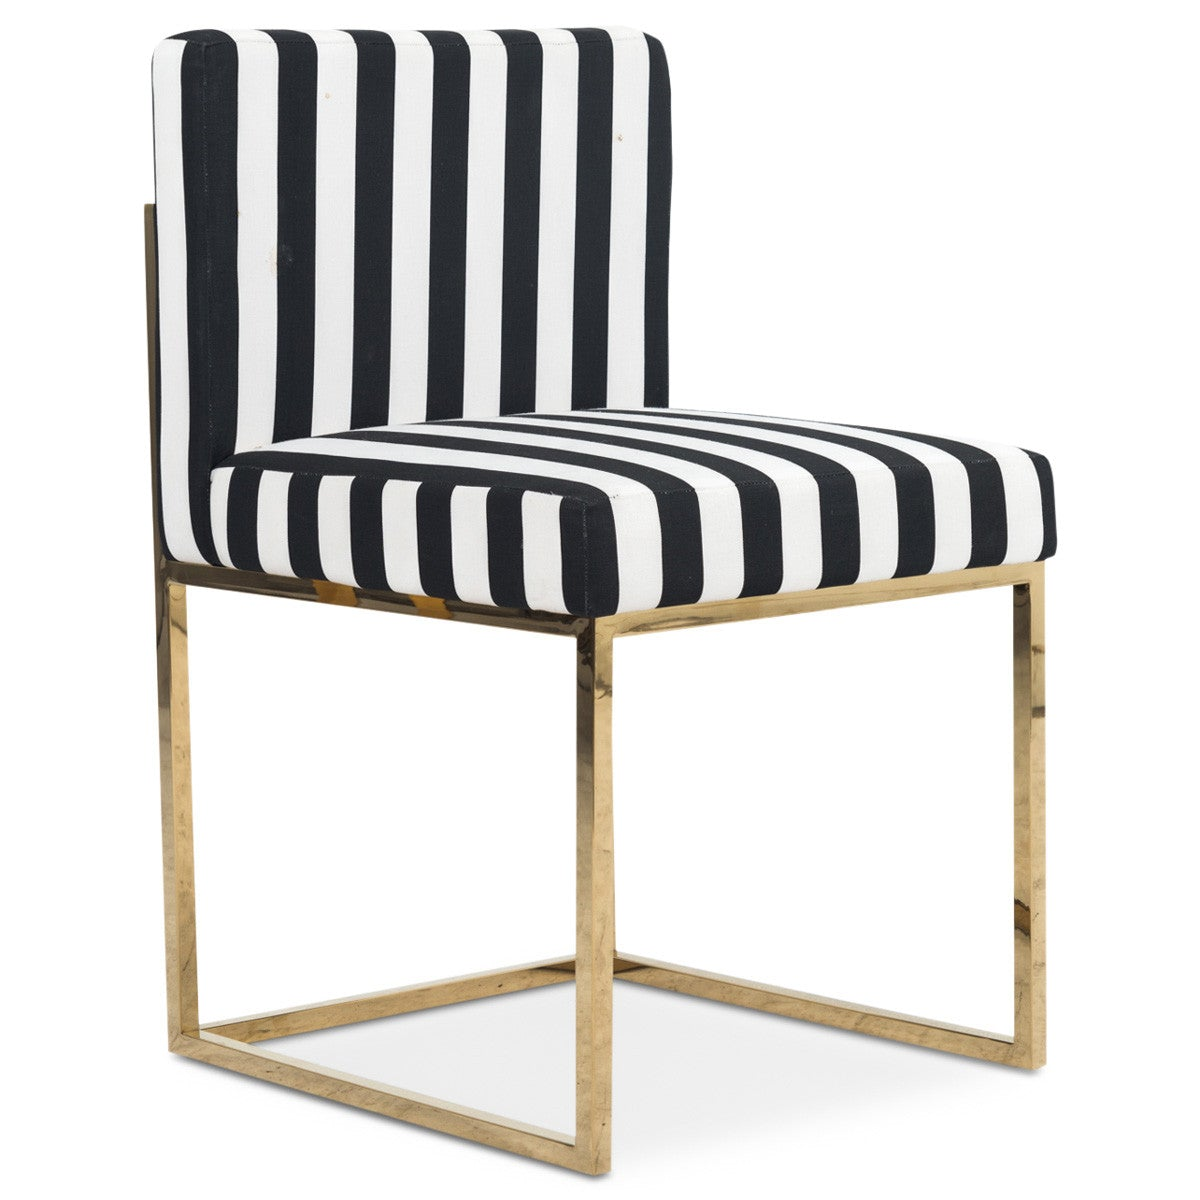 Charmant Modern Black And White Striped Dining Chair   ModShop